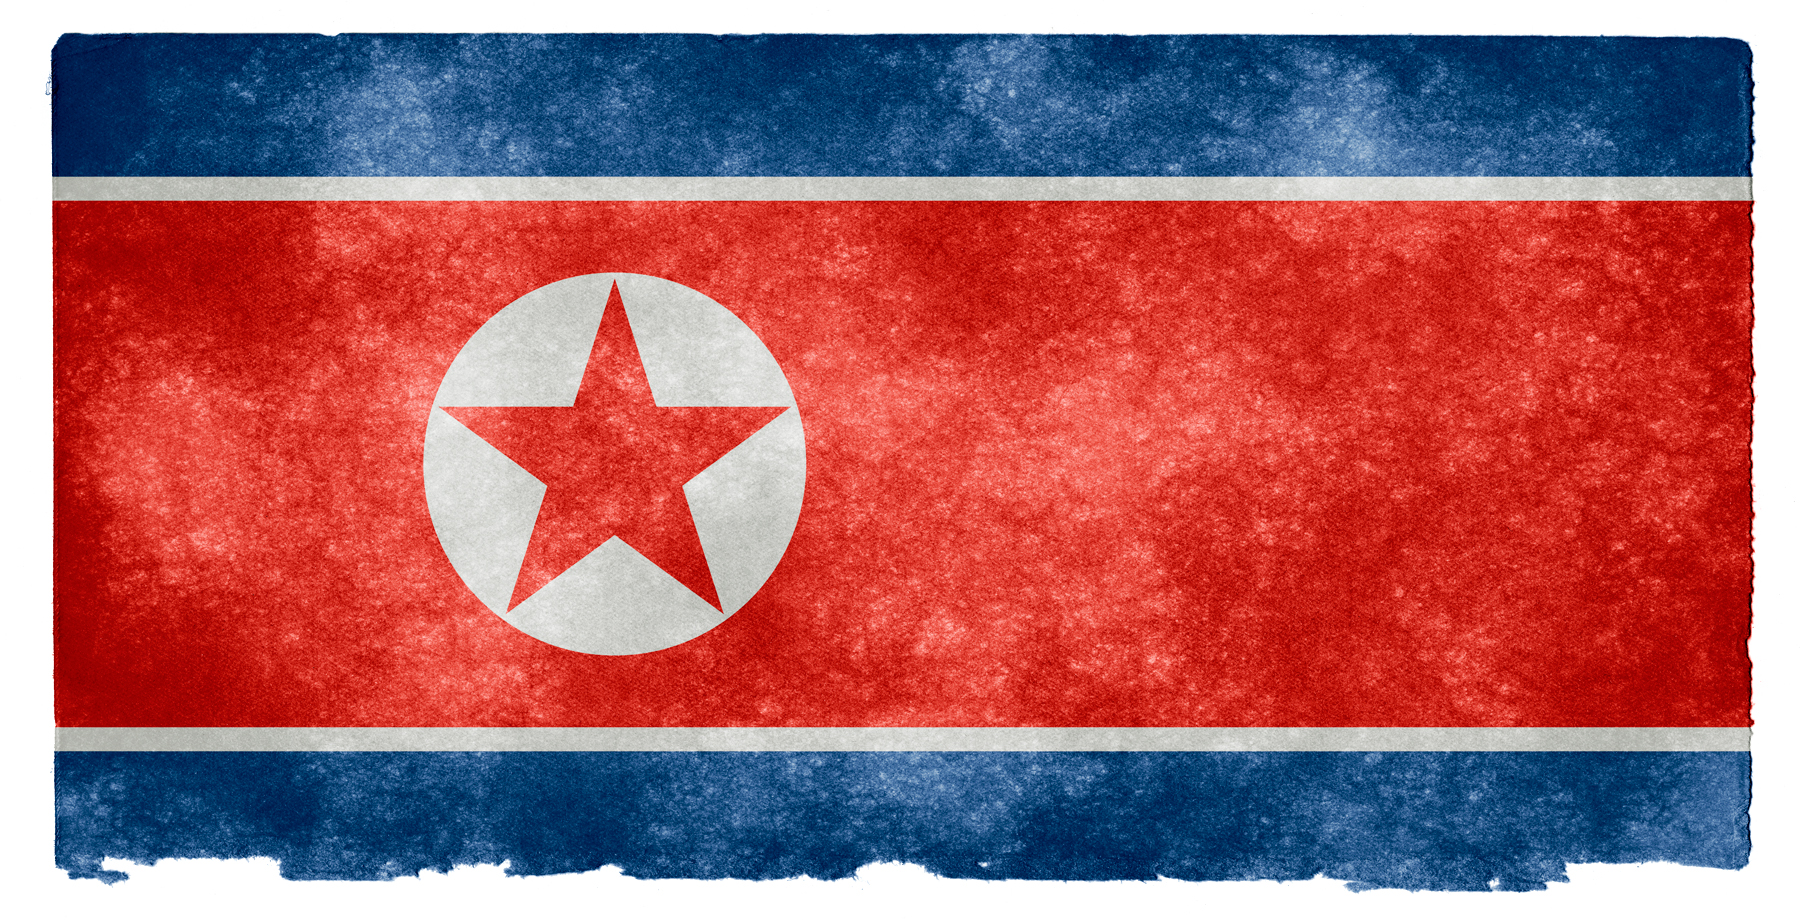 North Korea Grunge Flag, Aged, Resource, National, North, HQ Photo